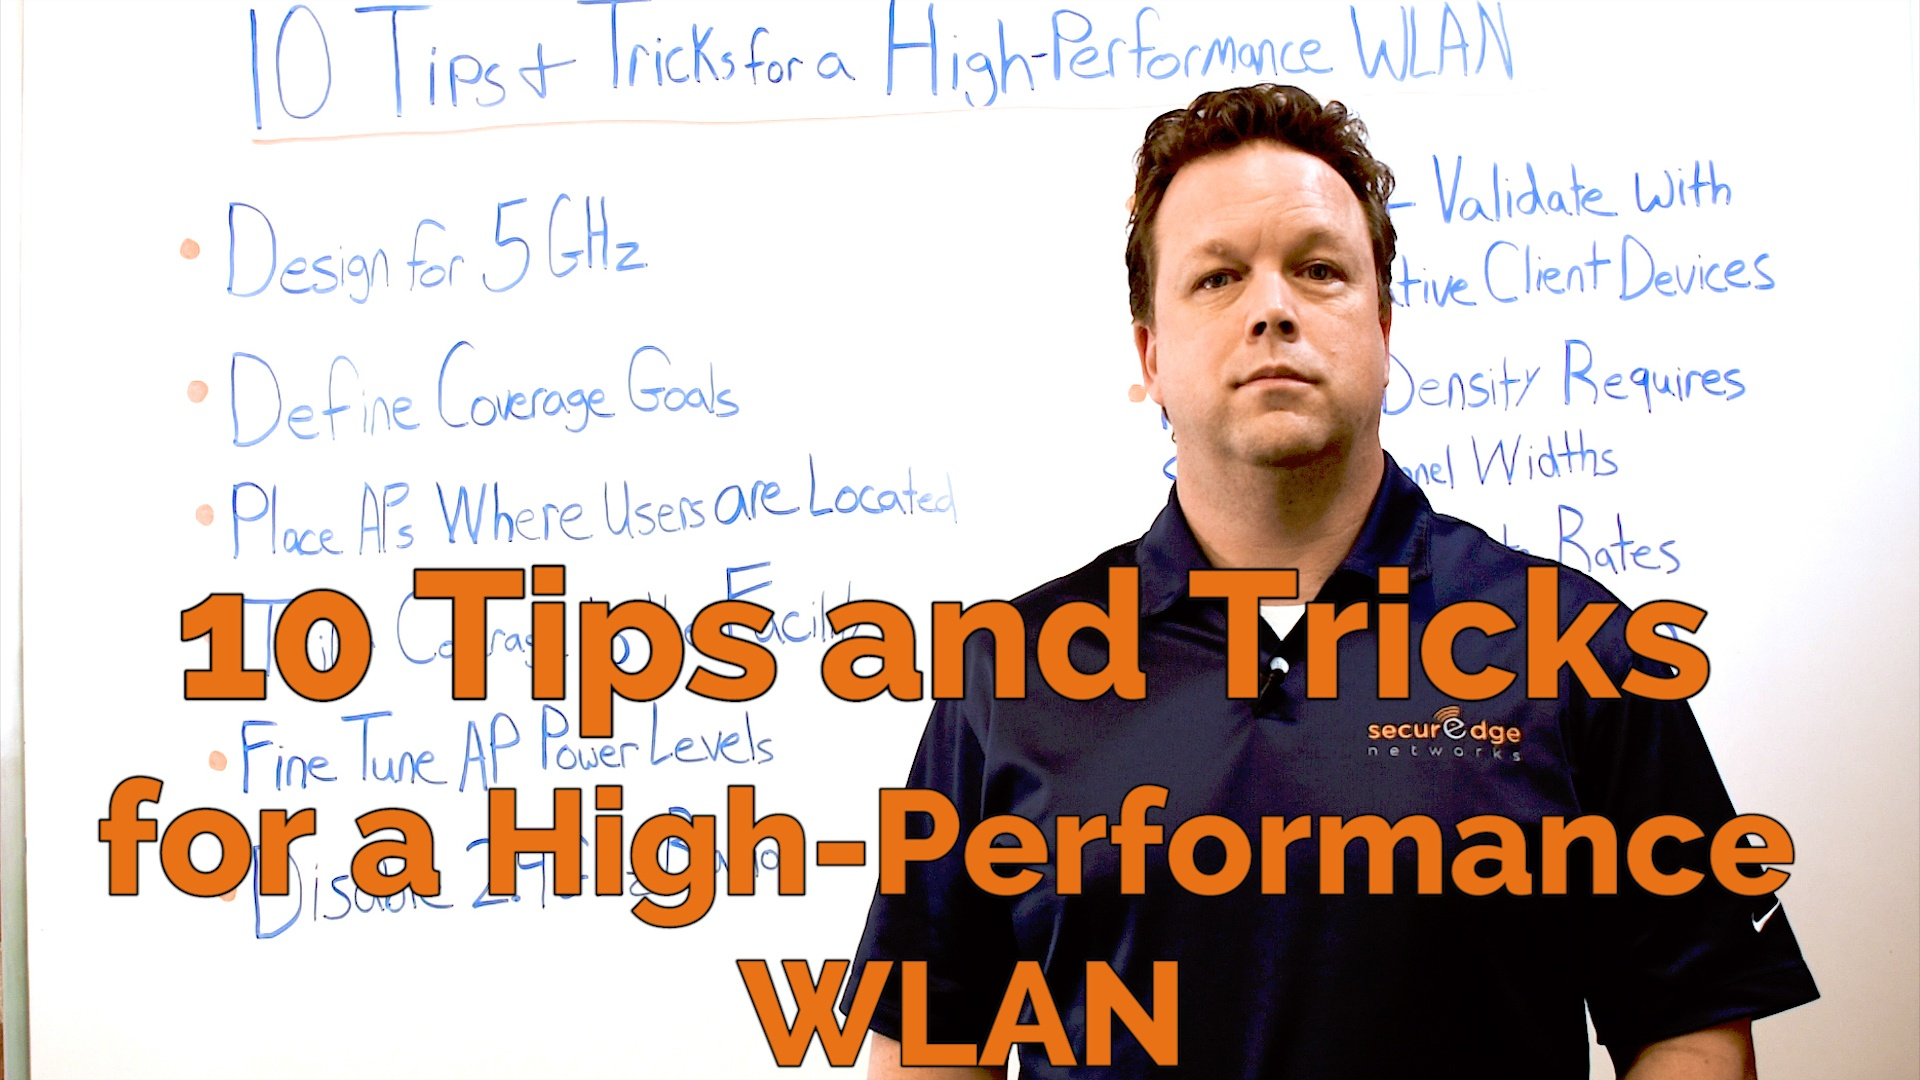 Wireless Network Design: 10 Tips and Tricks for a High-Performance WLAN